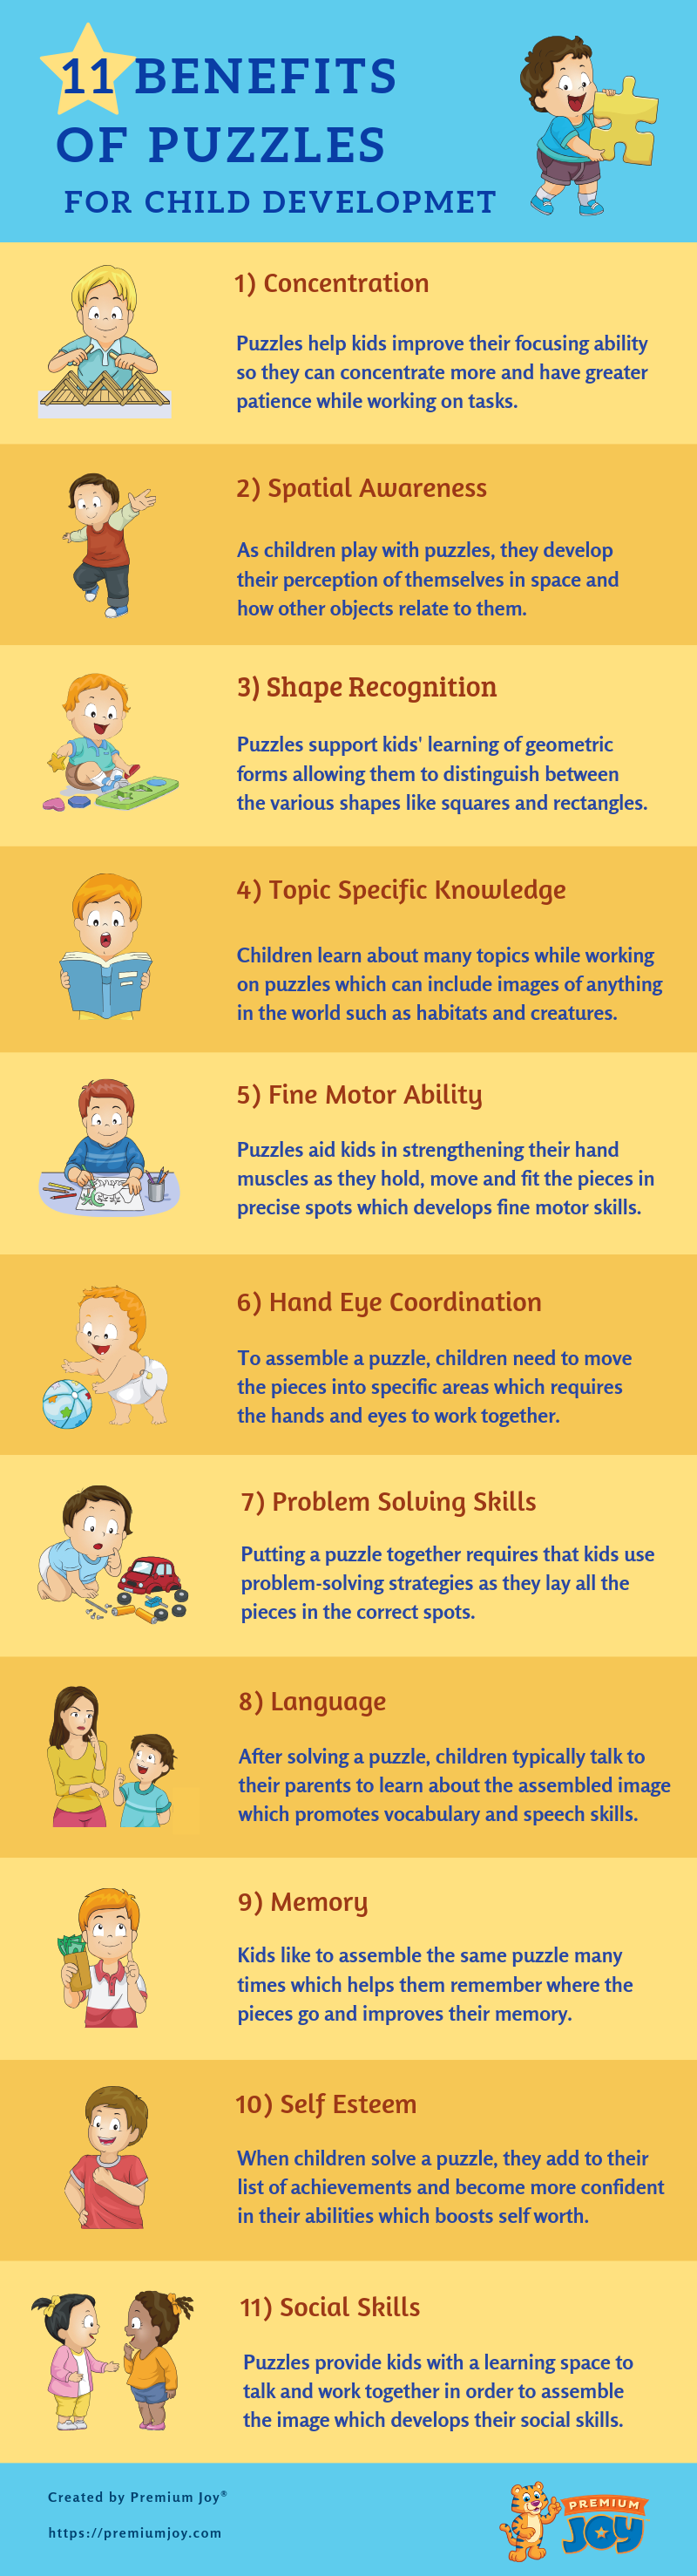 Benefits of Puzzles for Child Development